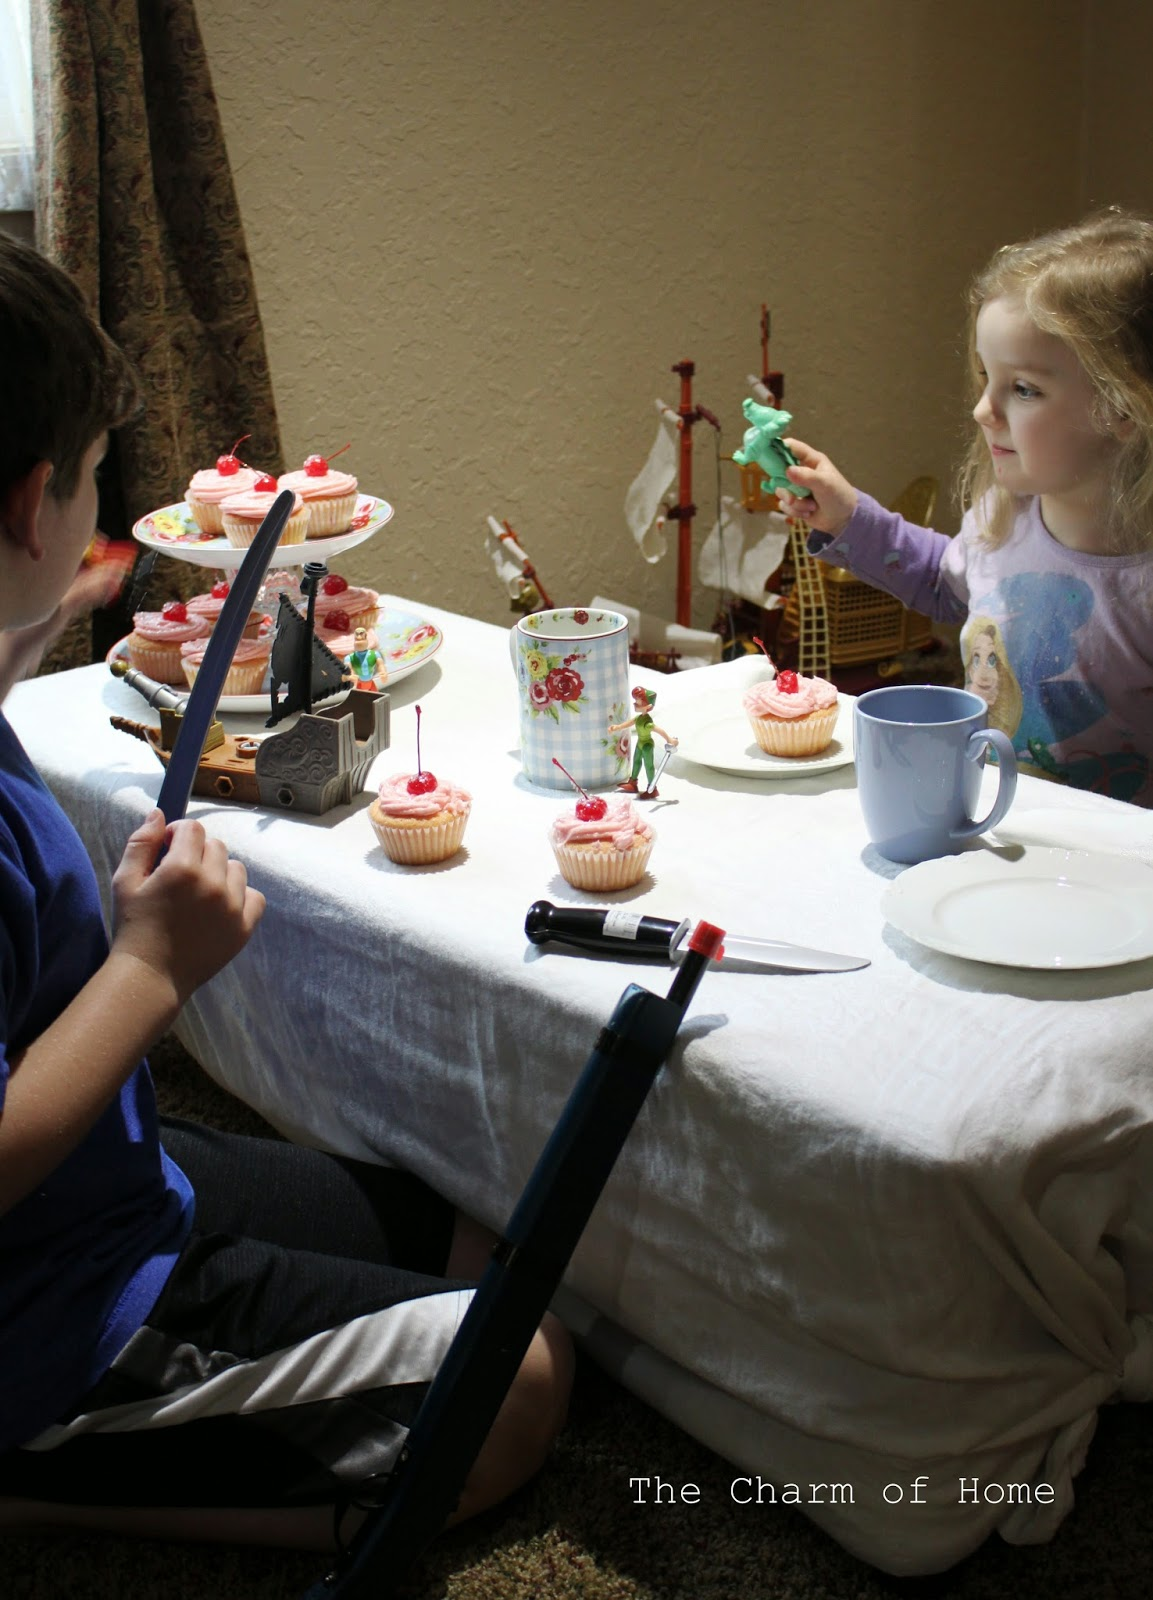 Fairy Cakes with Pixie Dust: The Charm of Home